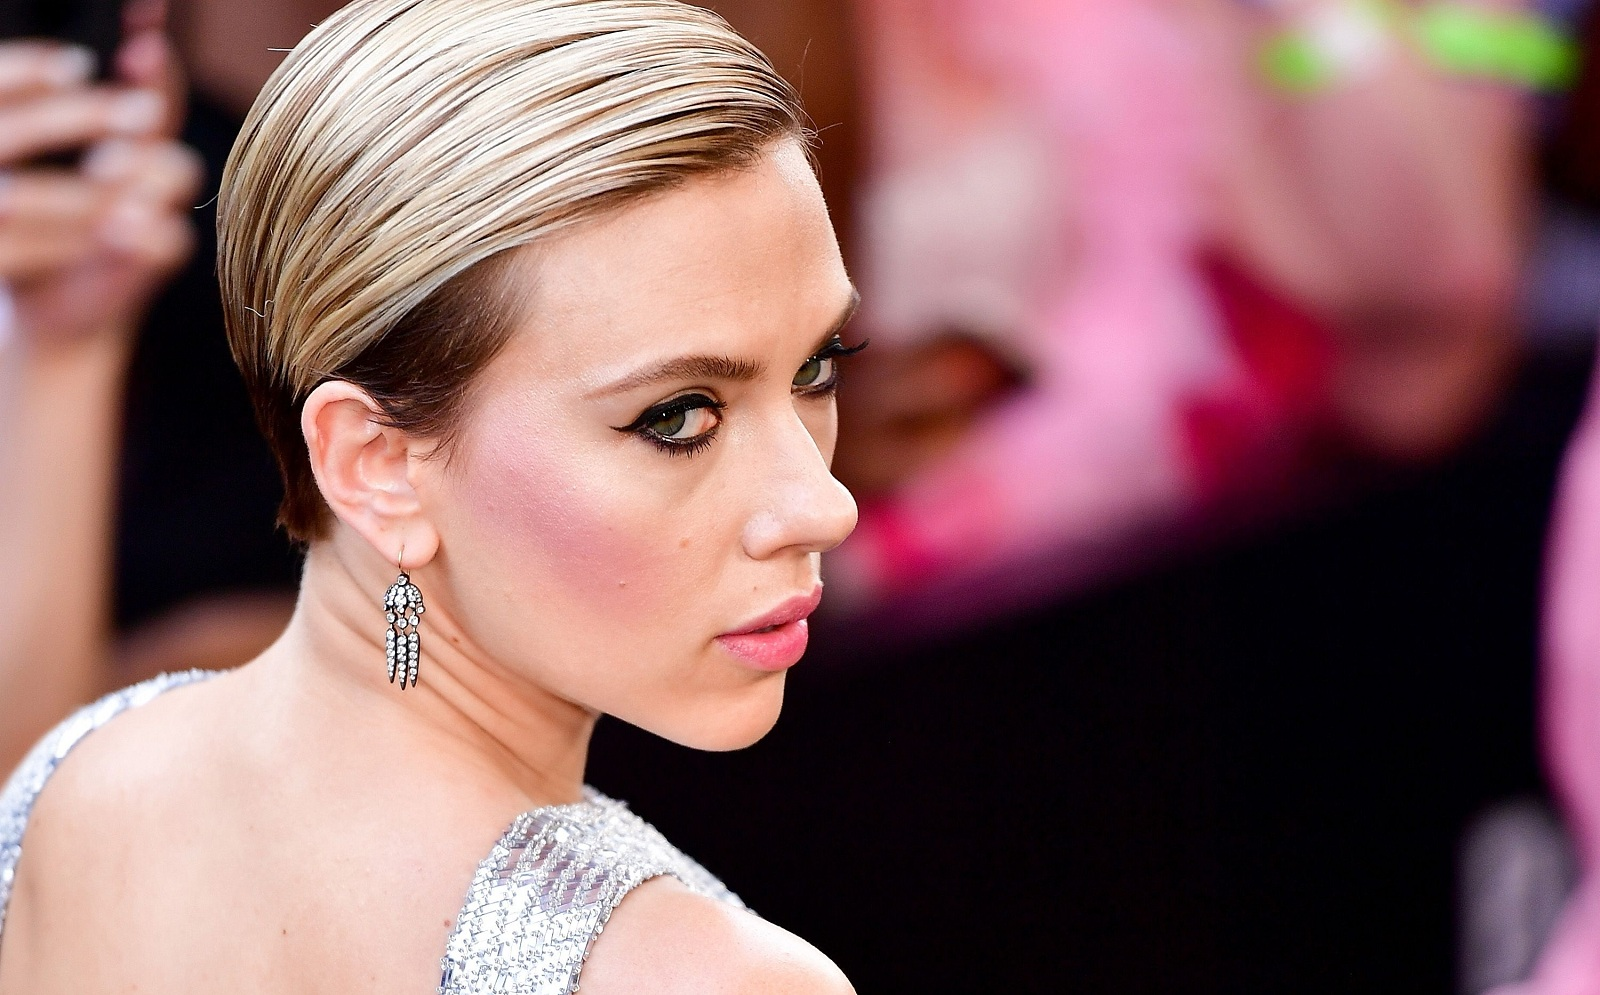 hbz-the-list-style-short-hair-scarjo-1501031910.jpg (421.5 Kb)